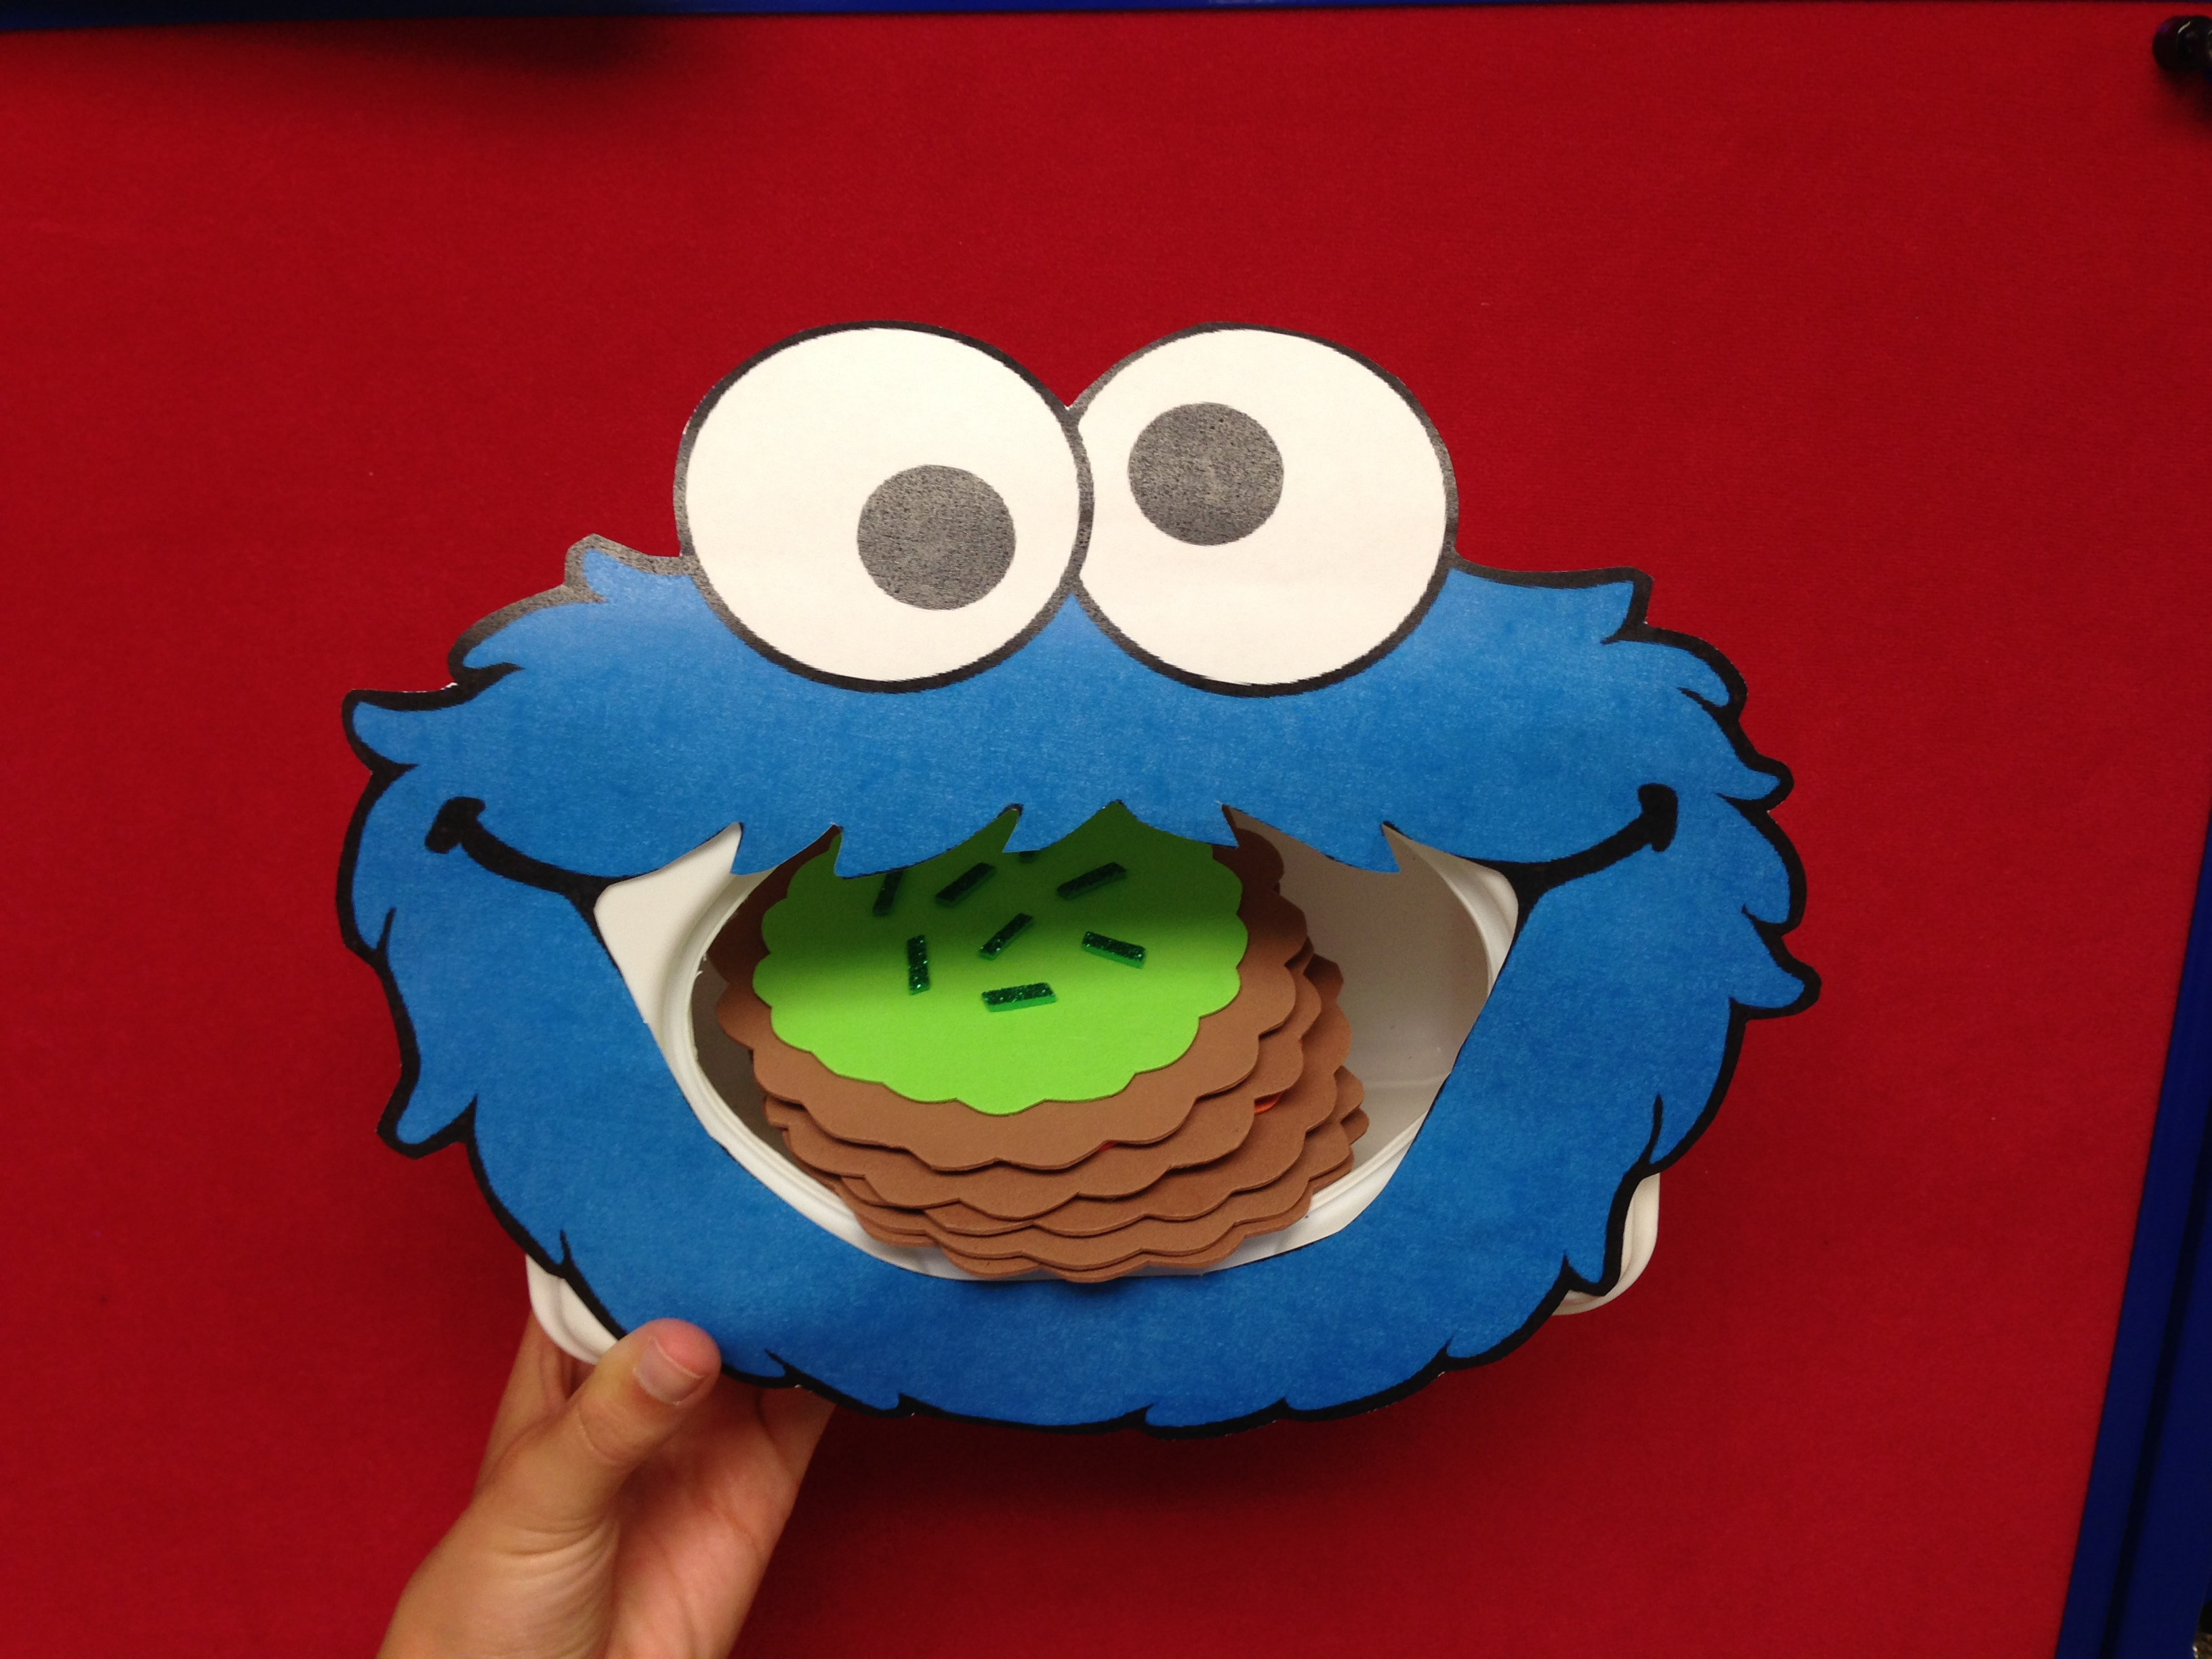 photograph about Printable Cookie Monster Face identified as Milk Cookies Sunflower Storytime